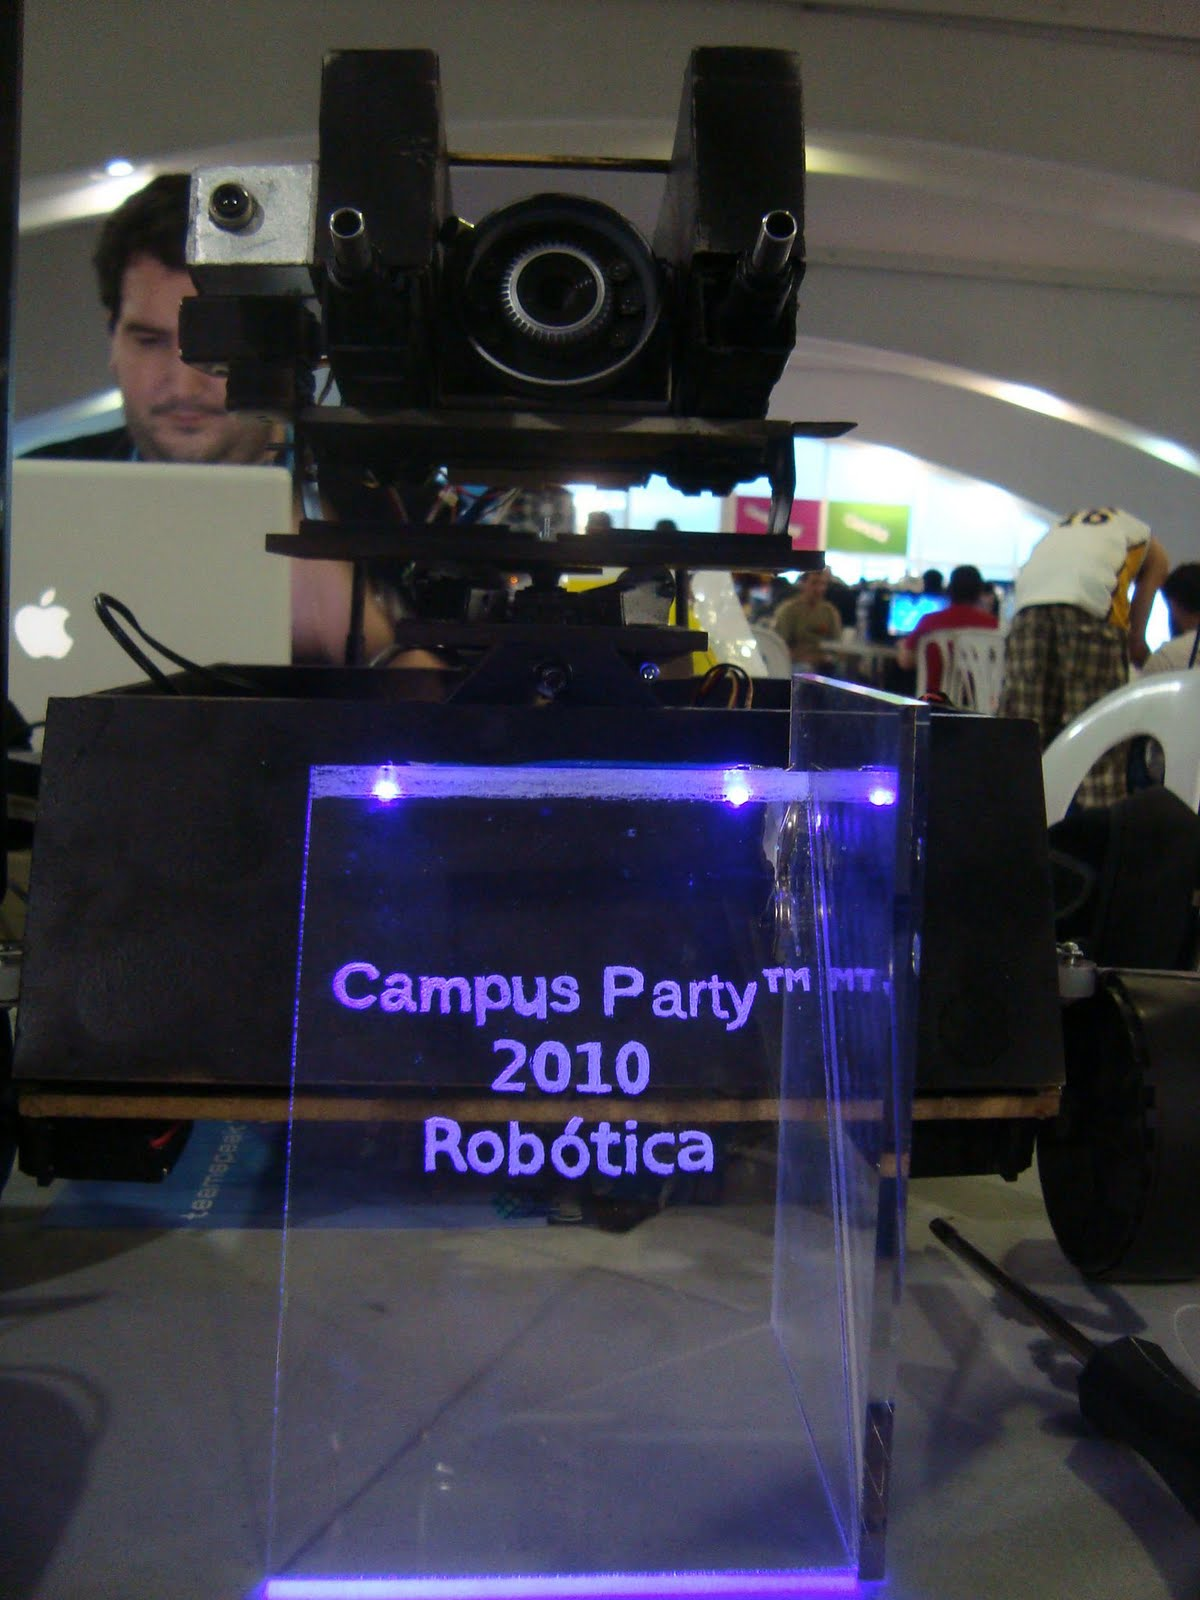 Texas Ranger, 1st place on Campus Party 2010 Free category